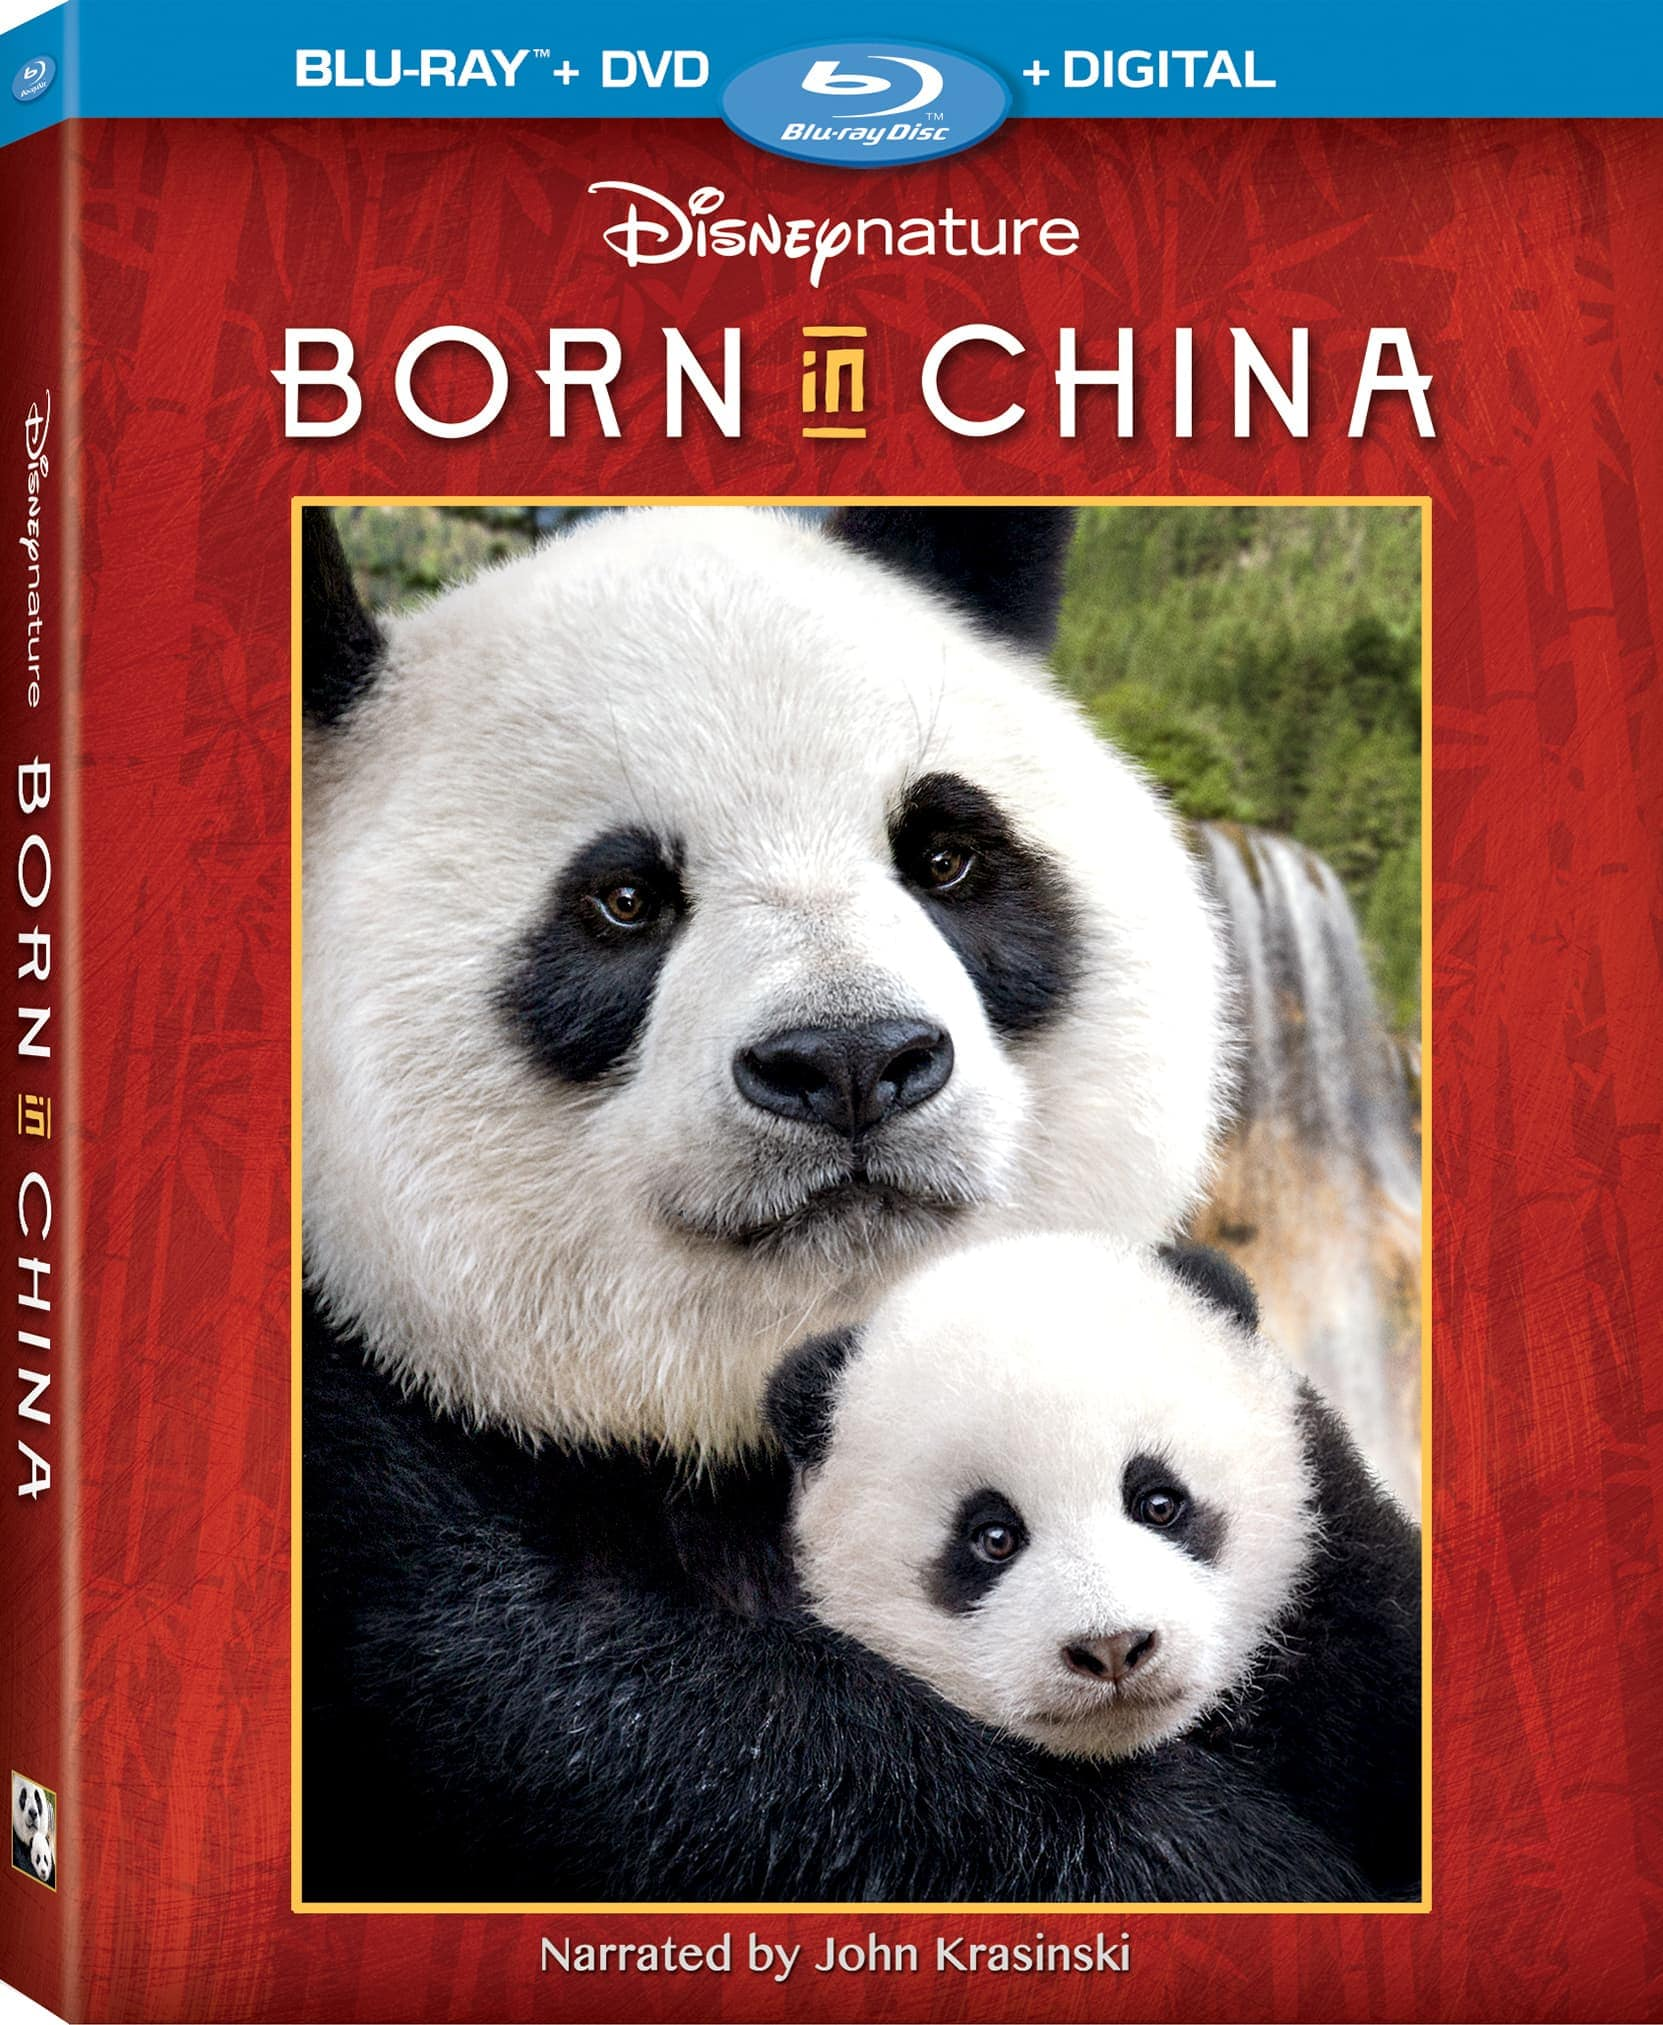 "Disney's Born In China, narrated by John Krasinski, transports audiences to some of the world's most extreme environments of China where few people have ever ventured to witness wildly intimate and adorable moments in the lives of three animal families - a doting panda bear mother, a 2-year-old golden snub-nosed monkey, and a mother snow leopard. It is the seventh theatrical release from Disneynature, which brings the world's top nature filmmakers together to share wildlife stories that engage, inspire and educate. The breathtaking footage and high-definition quality picture is captivating for audiences of all ages and is a must-add to the in-home collection. Disneynature's newest true-life adventure film ""Born in China"" journeys into homes on Digital and Blu-ray™ Combo Pack TODAY, Aug. 29."